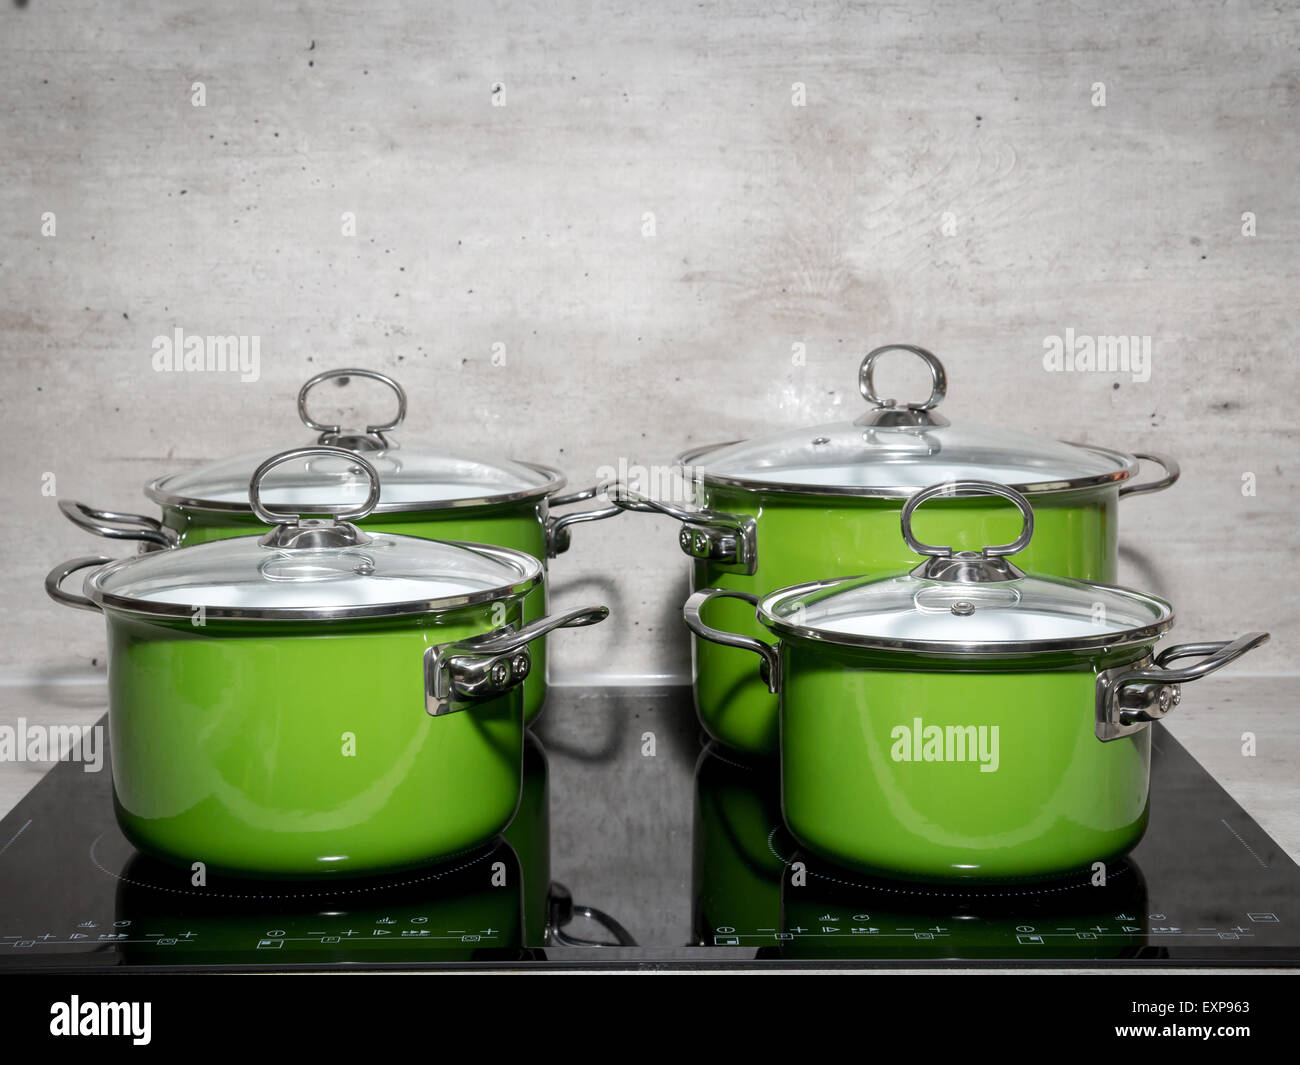 Four green enamel stewpots on black induction cooker - Stock Image